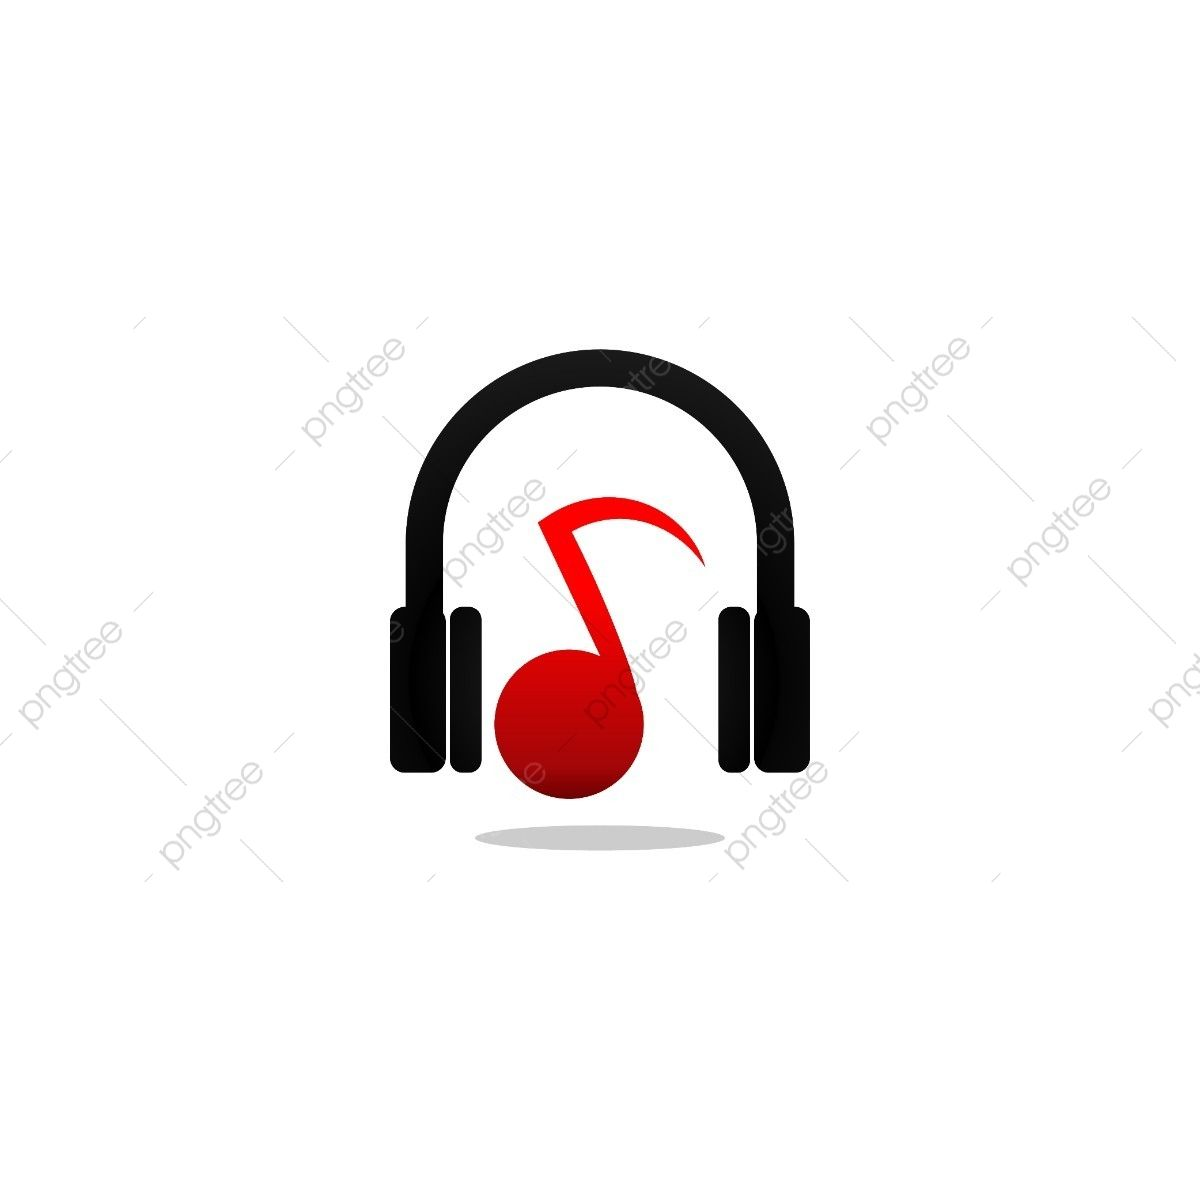 Headphone And Note Music Logo And Icon Design Template Music Clipart Music Icons Logo Icons Png And Vector With Transparent Background For Free Download Music Logo Inspiration Music Logo Icon Design